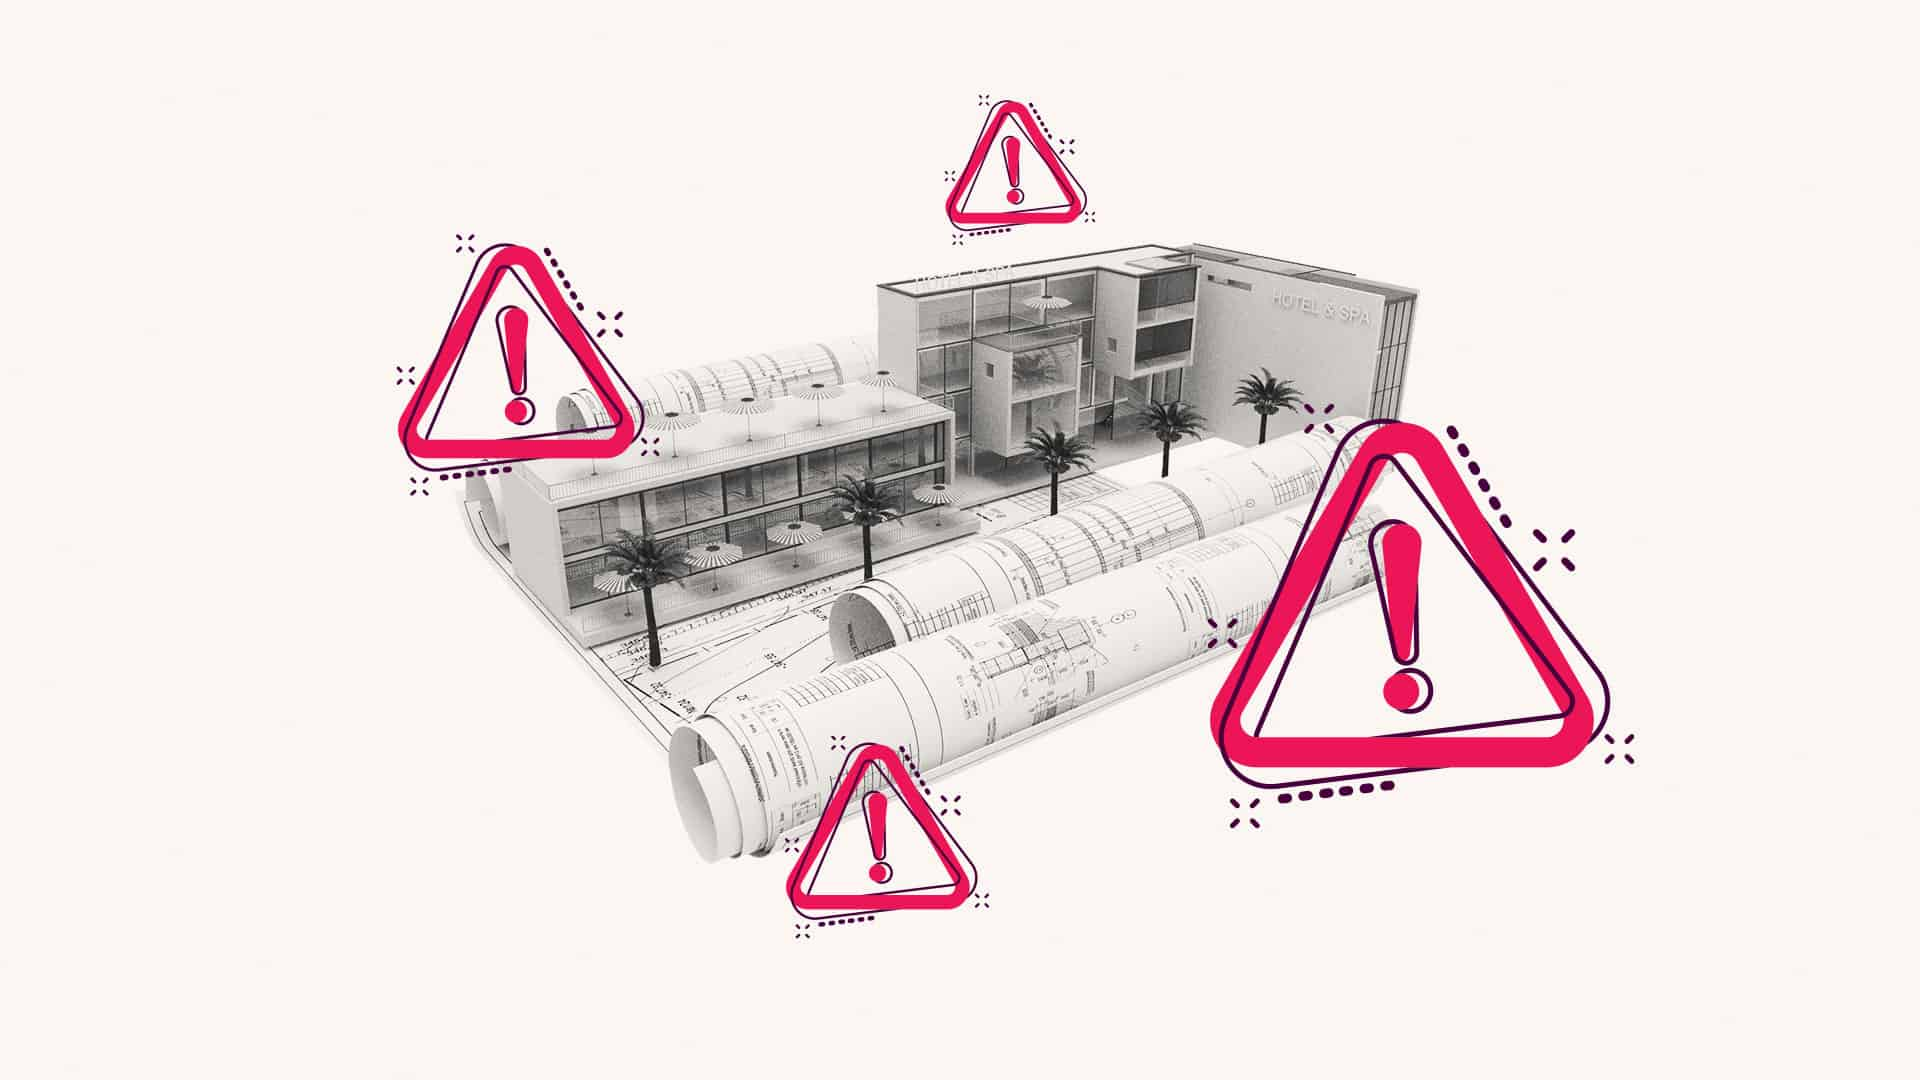 Errors in building hotel brand toolkits and playbooks